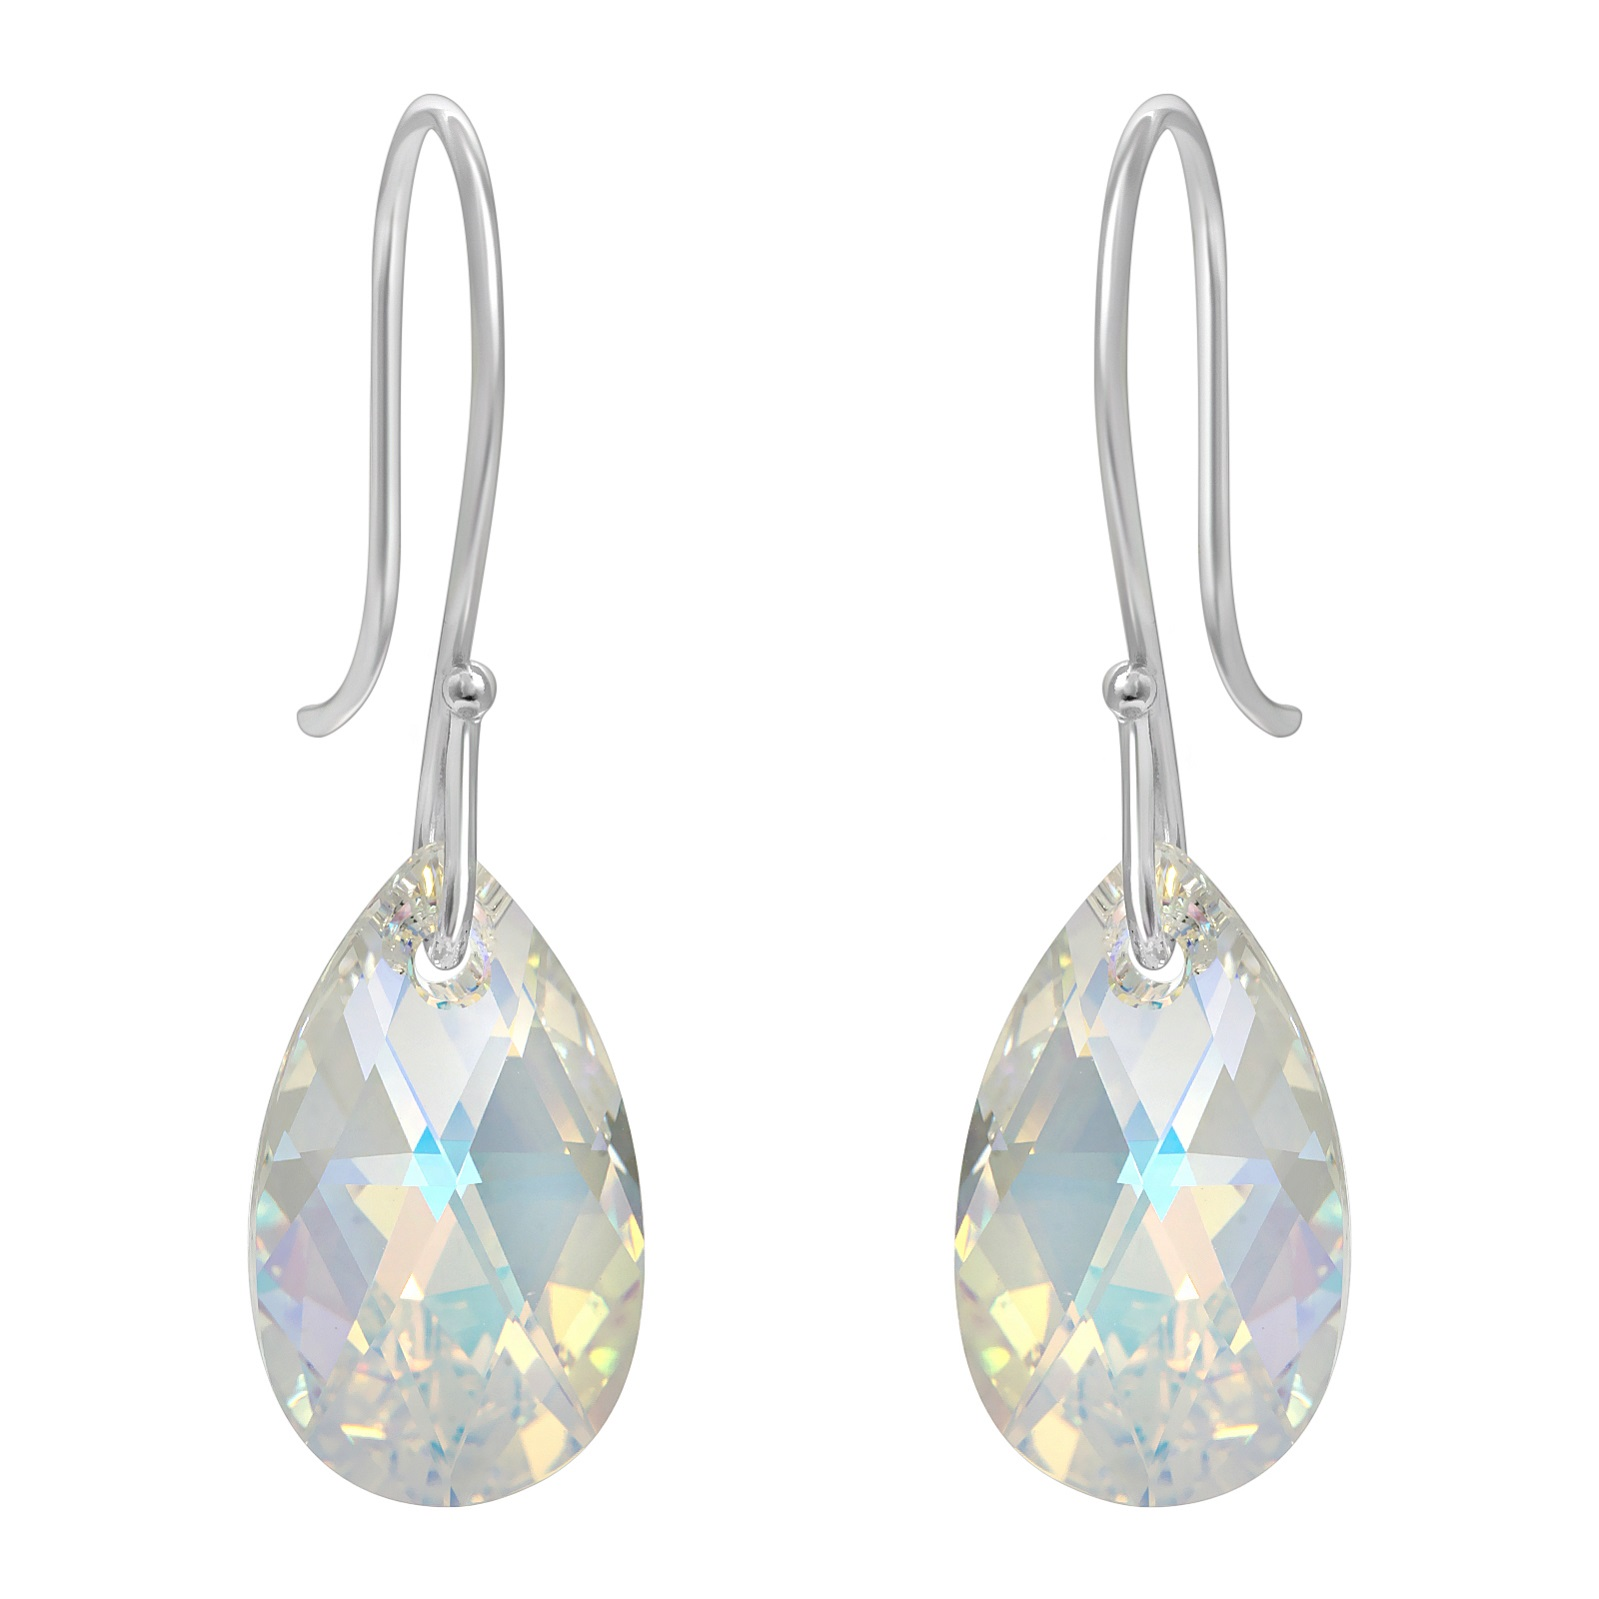 Crystal Briolette Earrings - Swarovski Crystal Elements Clear AB